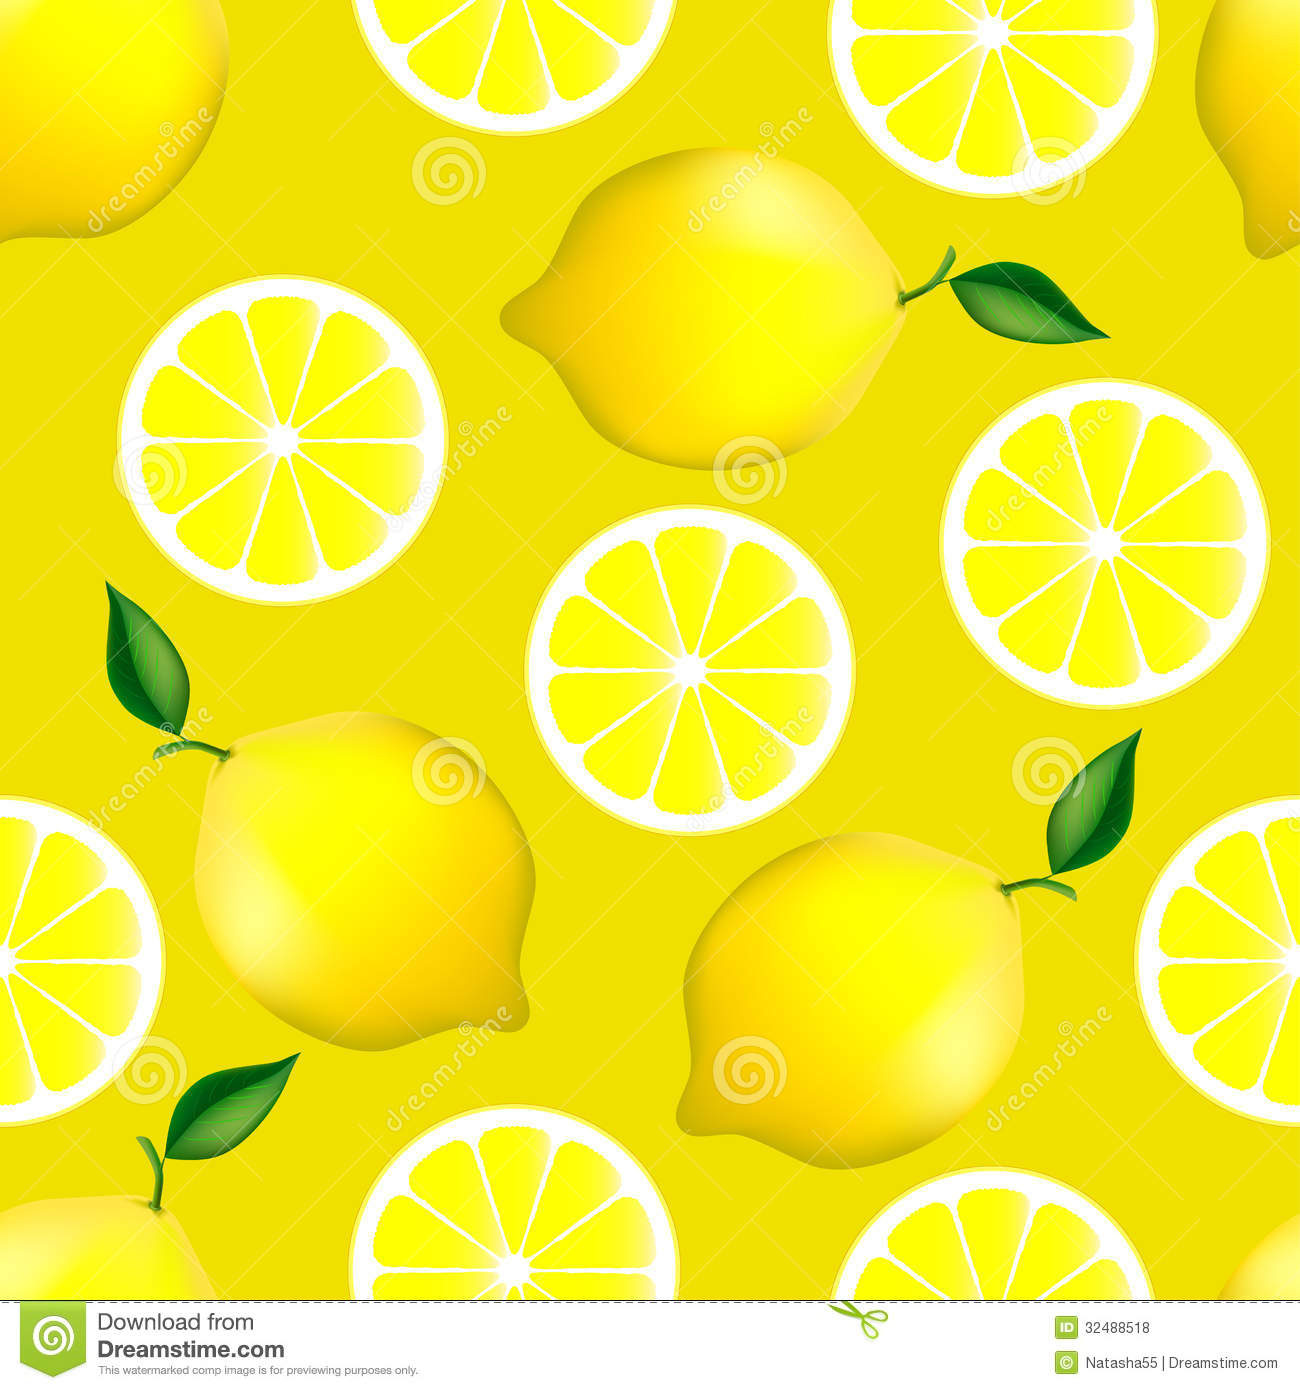 Citrus Seamless Pattern With Lemons Stock Vector - Image ...